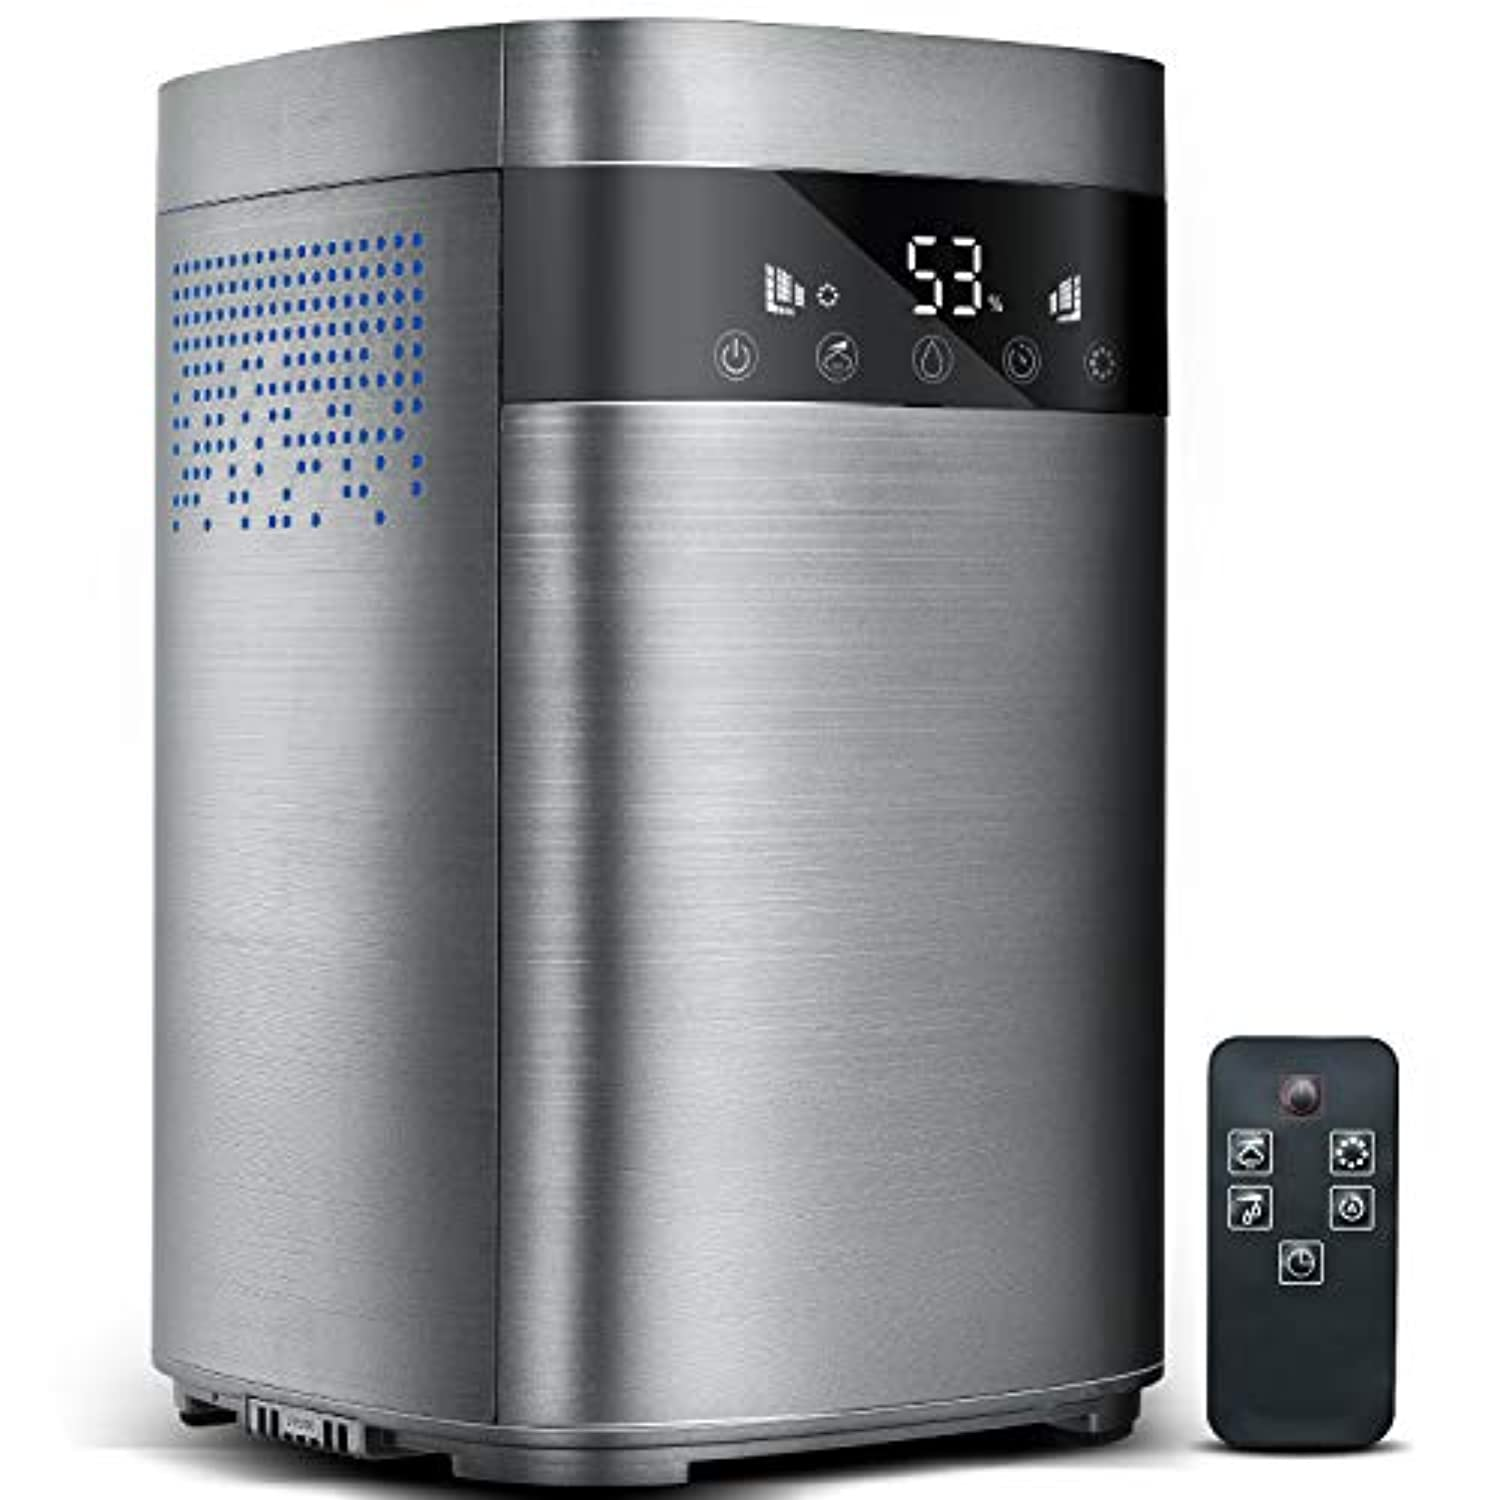 Classier: Buy TTLIFE TTLIFE Top-Filling Warm & Cool Mist Humidifier, Large Capacity 4L Remote Control 360° Modern Humidifier, LED Touch Display, Customized Humidity, Sleep Mode Whisper Quiet Humidifier Large Bedroom